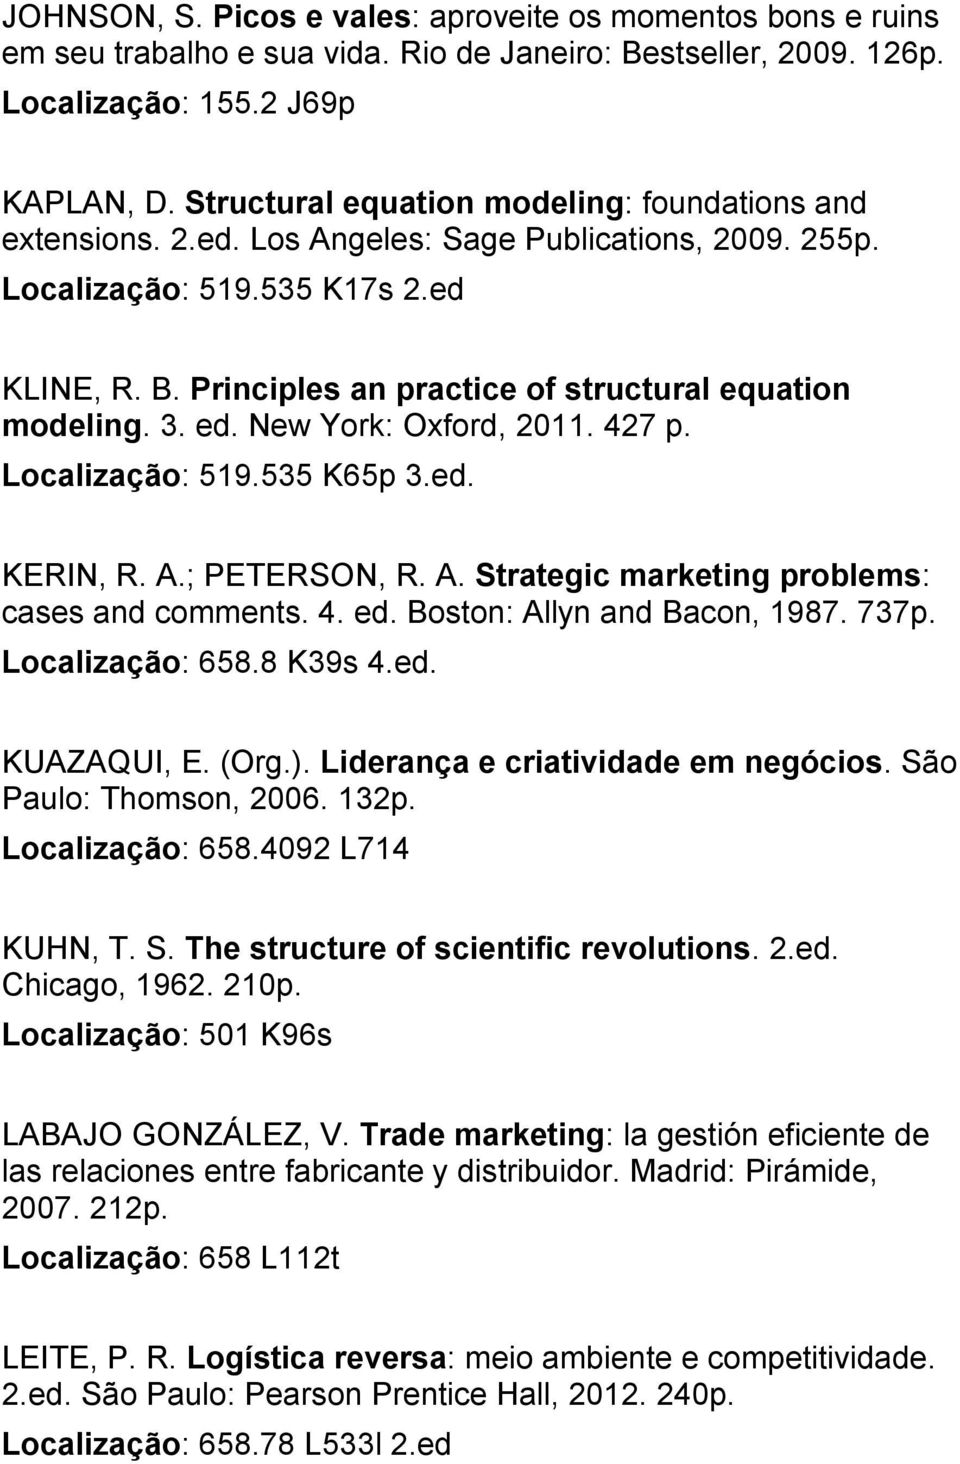 Principles an practice of structural equation modeling. 3. ed. New York: Oxford, 2011. 427 p. Localização: 519.535 K65p 3.ed. KERIN, R. A.; PETERSON, R. A. Strategic marketing problems: cases and comments.